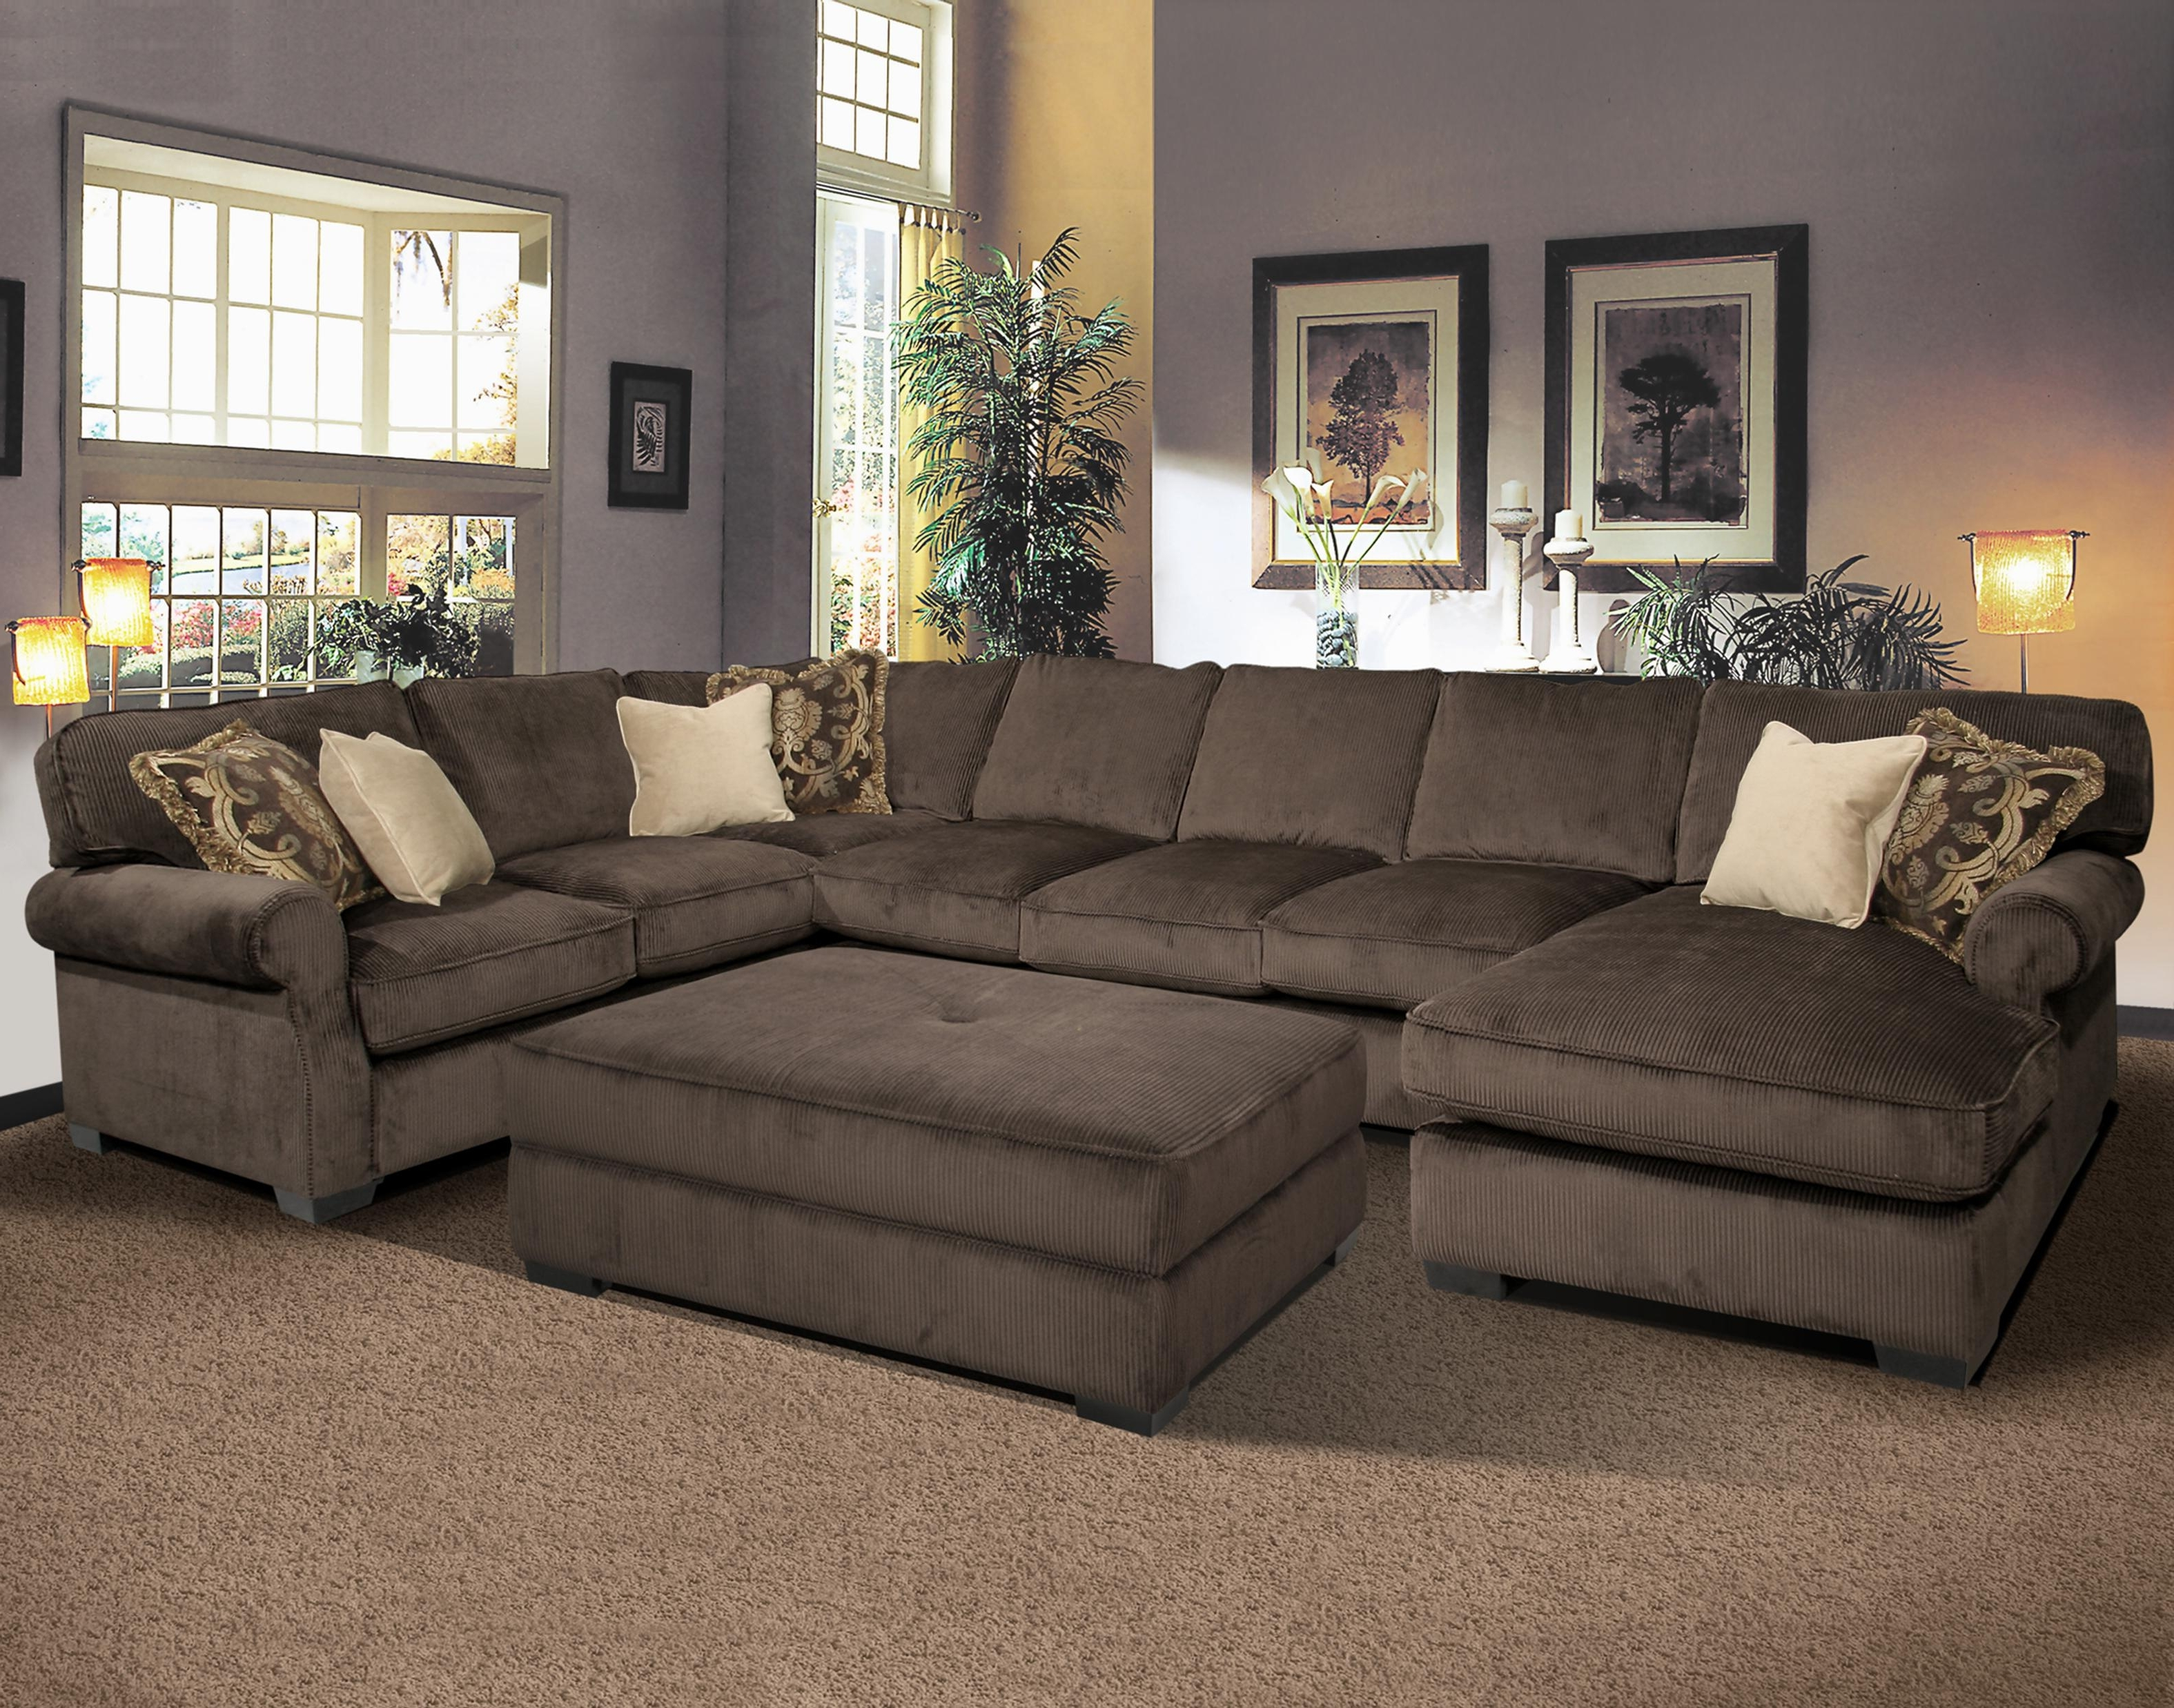 Sofa : L Shaped Sectional Sectional With Pull Out Bed Sofa Set For Most Up To Date Nz Sectional Sofas (View 15 of 15)